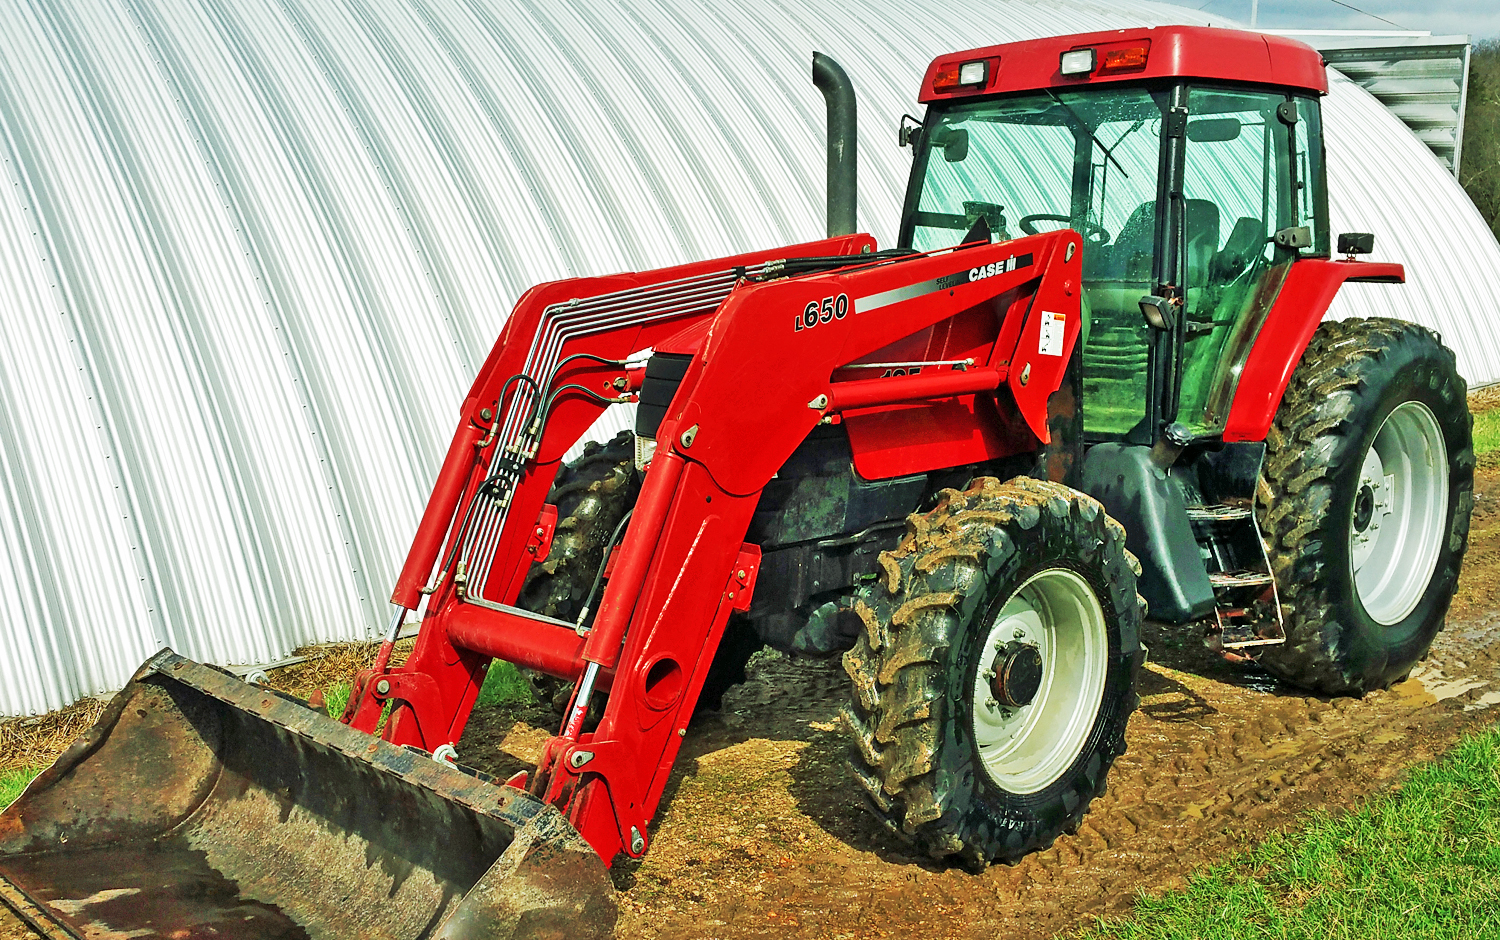 Case-IH MX135 tractor, MFWD, CHA, L650 self-leveling loader w/7'  quick-tach bucket, 4-speed tra